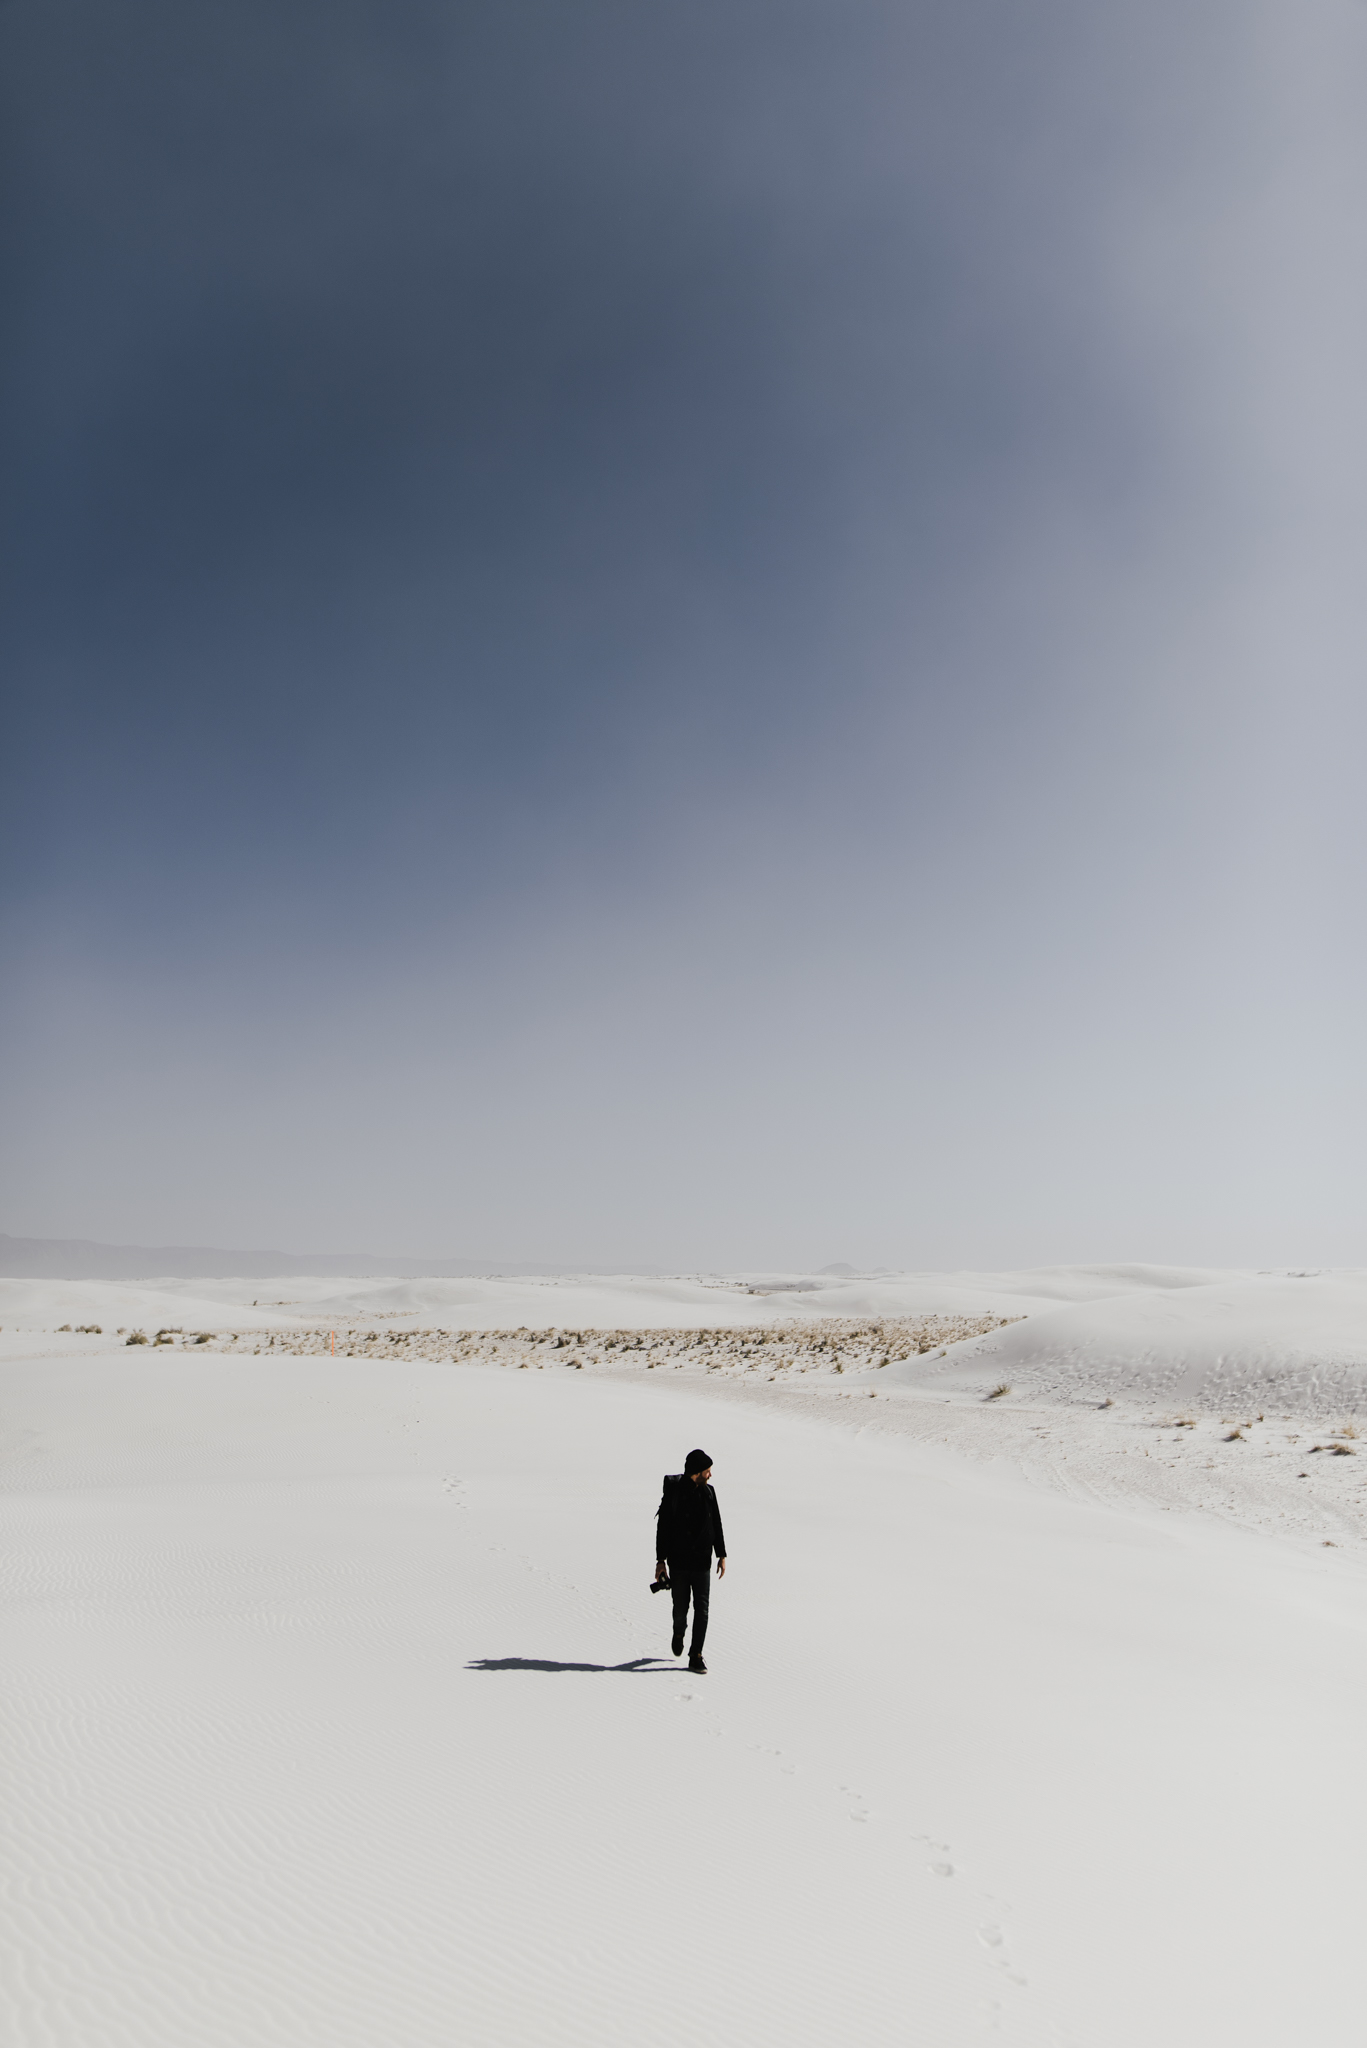 ©The-Ryans-Photography---White-Sands-National-Monument,-New-Mexico-Travel-013.jpg